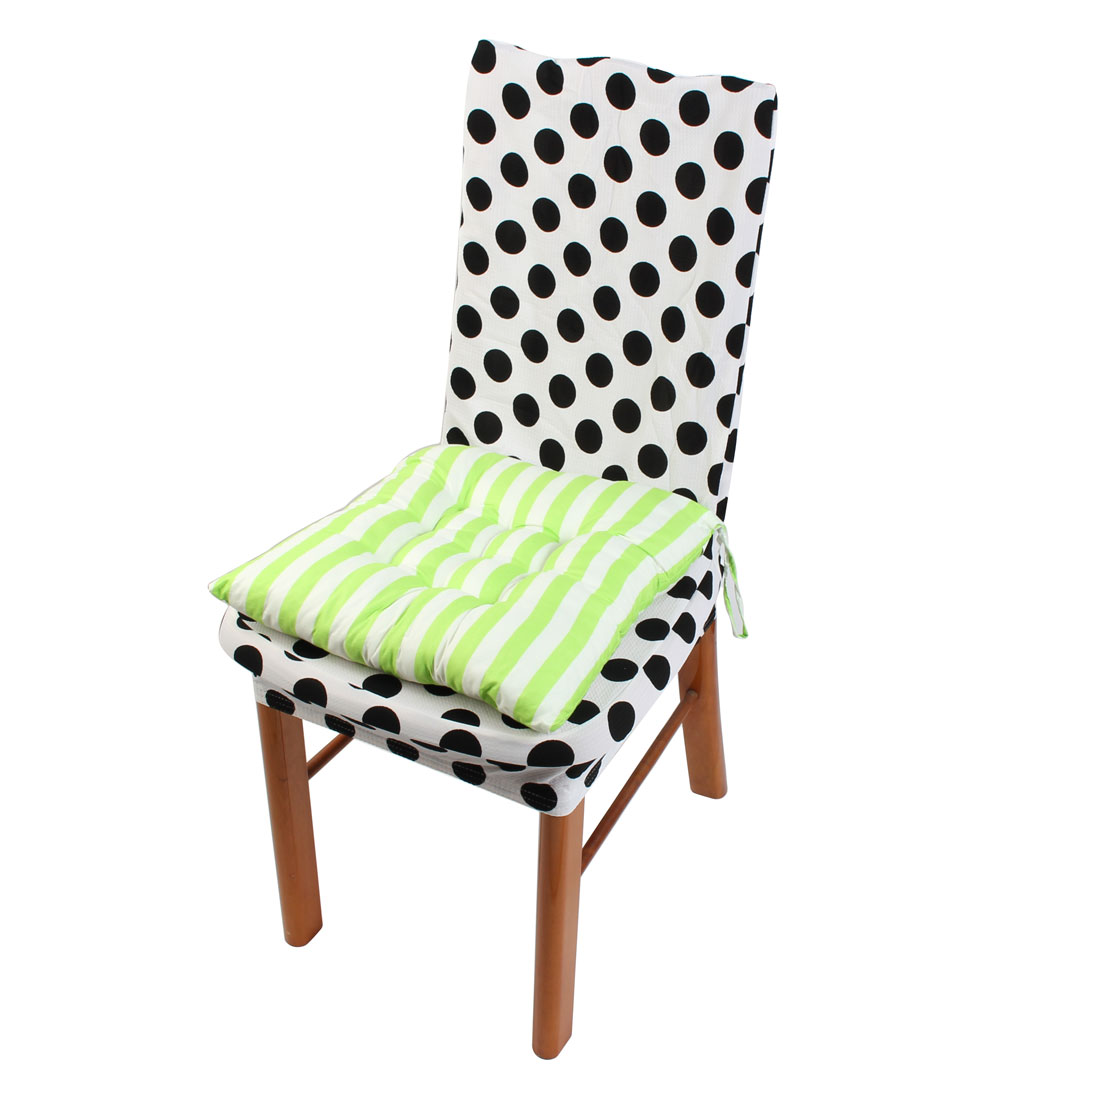 House Chair Cotton Blends Square Stripe Stamp Design Straps Non-slip Seat Cushion Green and White 40cm x 40cm